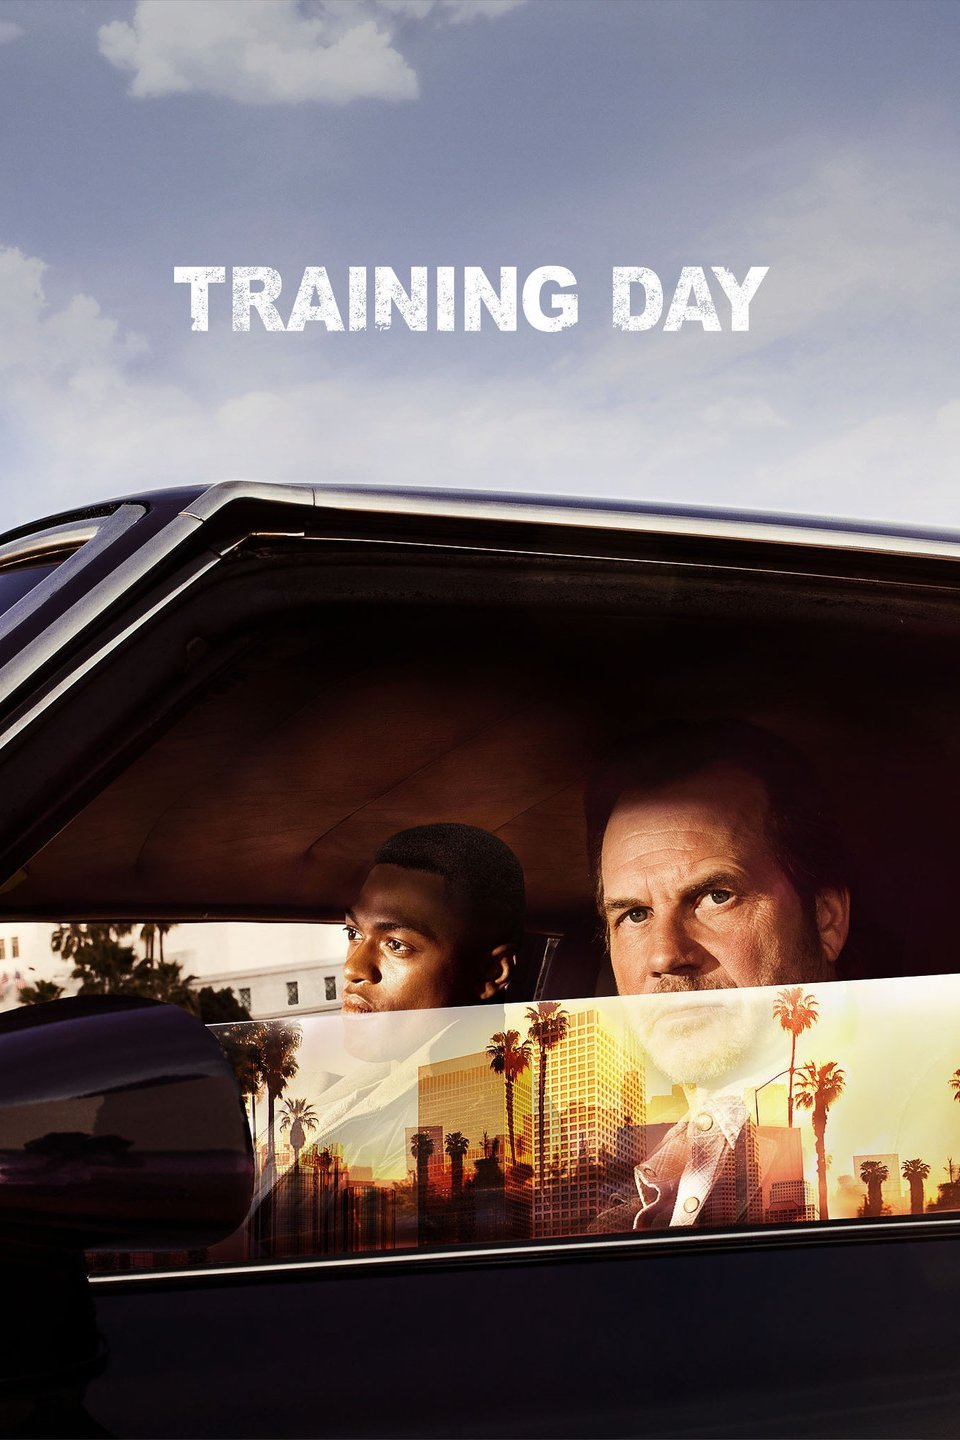 Training Day Season 1 Download Episode 5 HDTV Micromkv